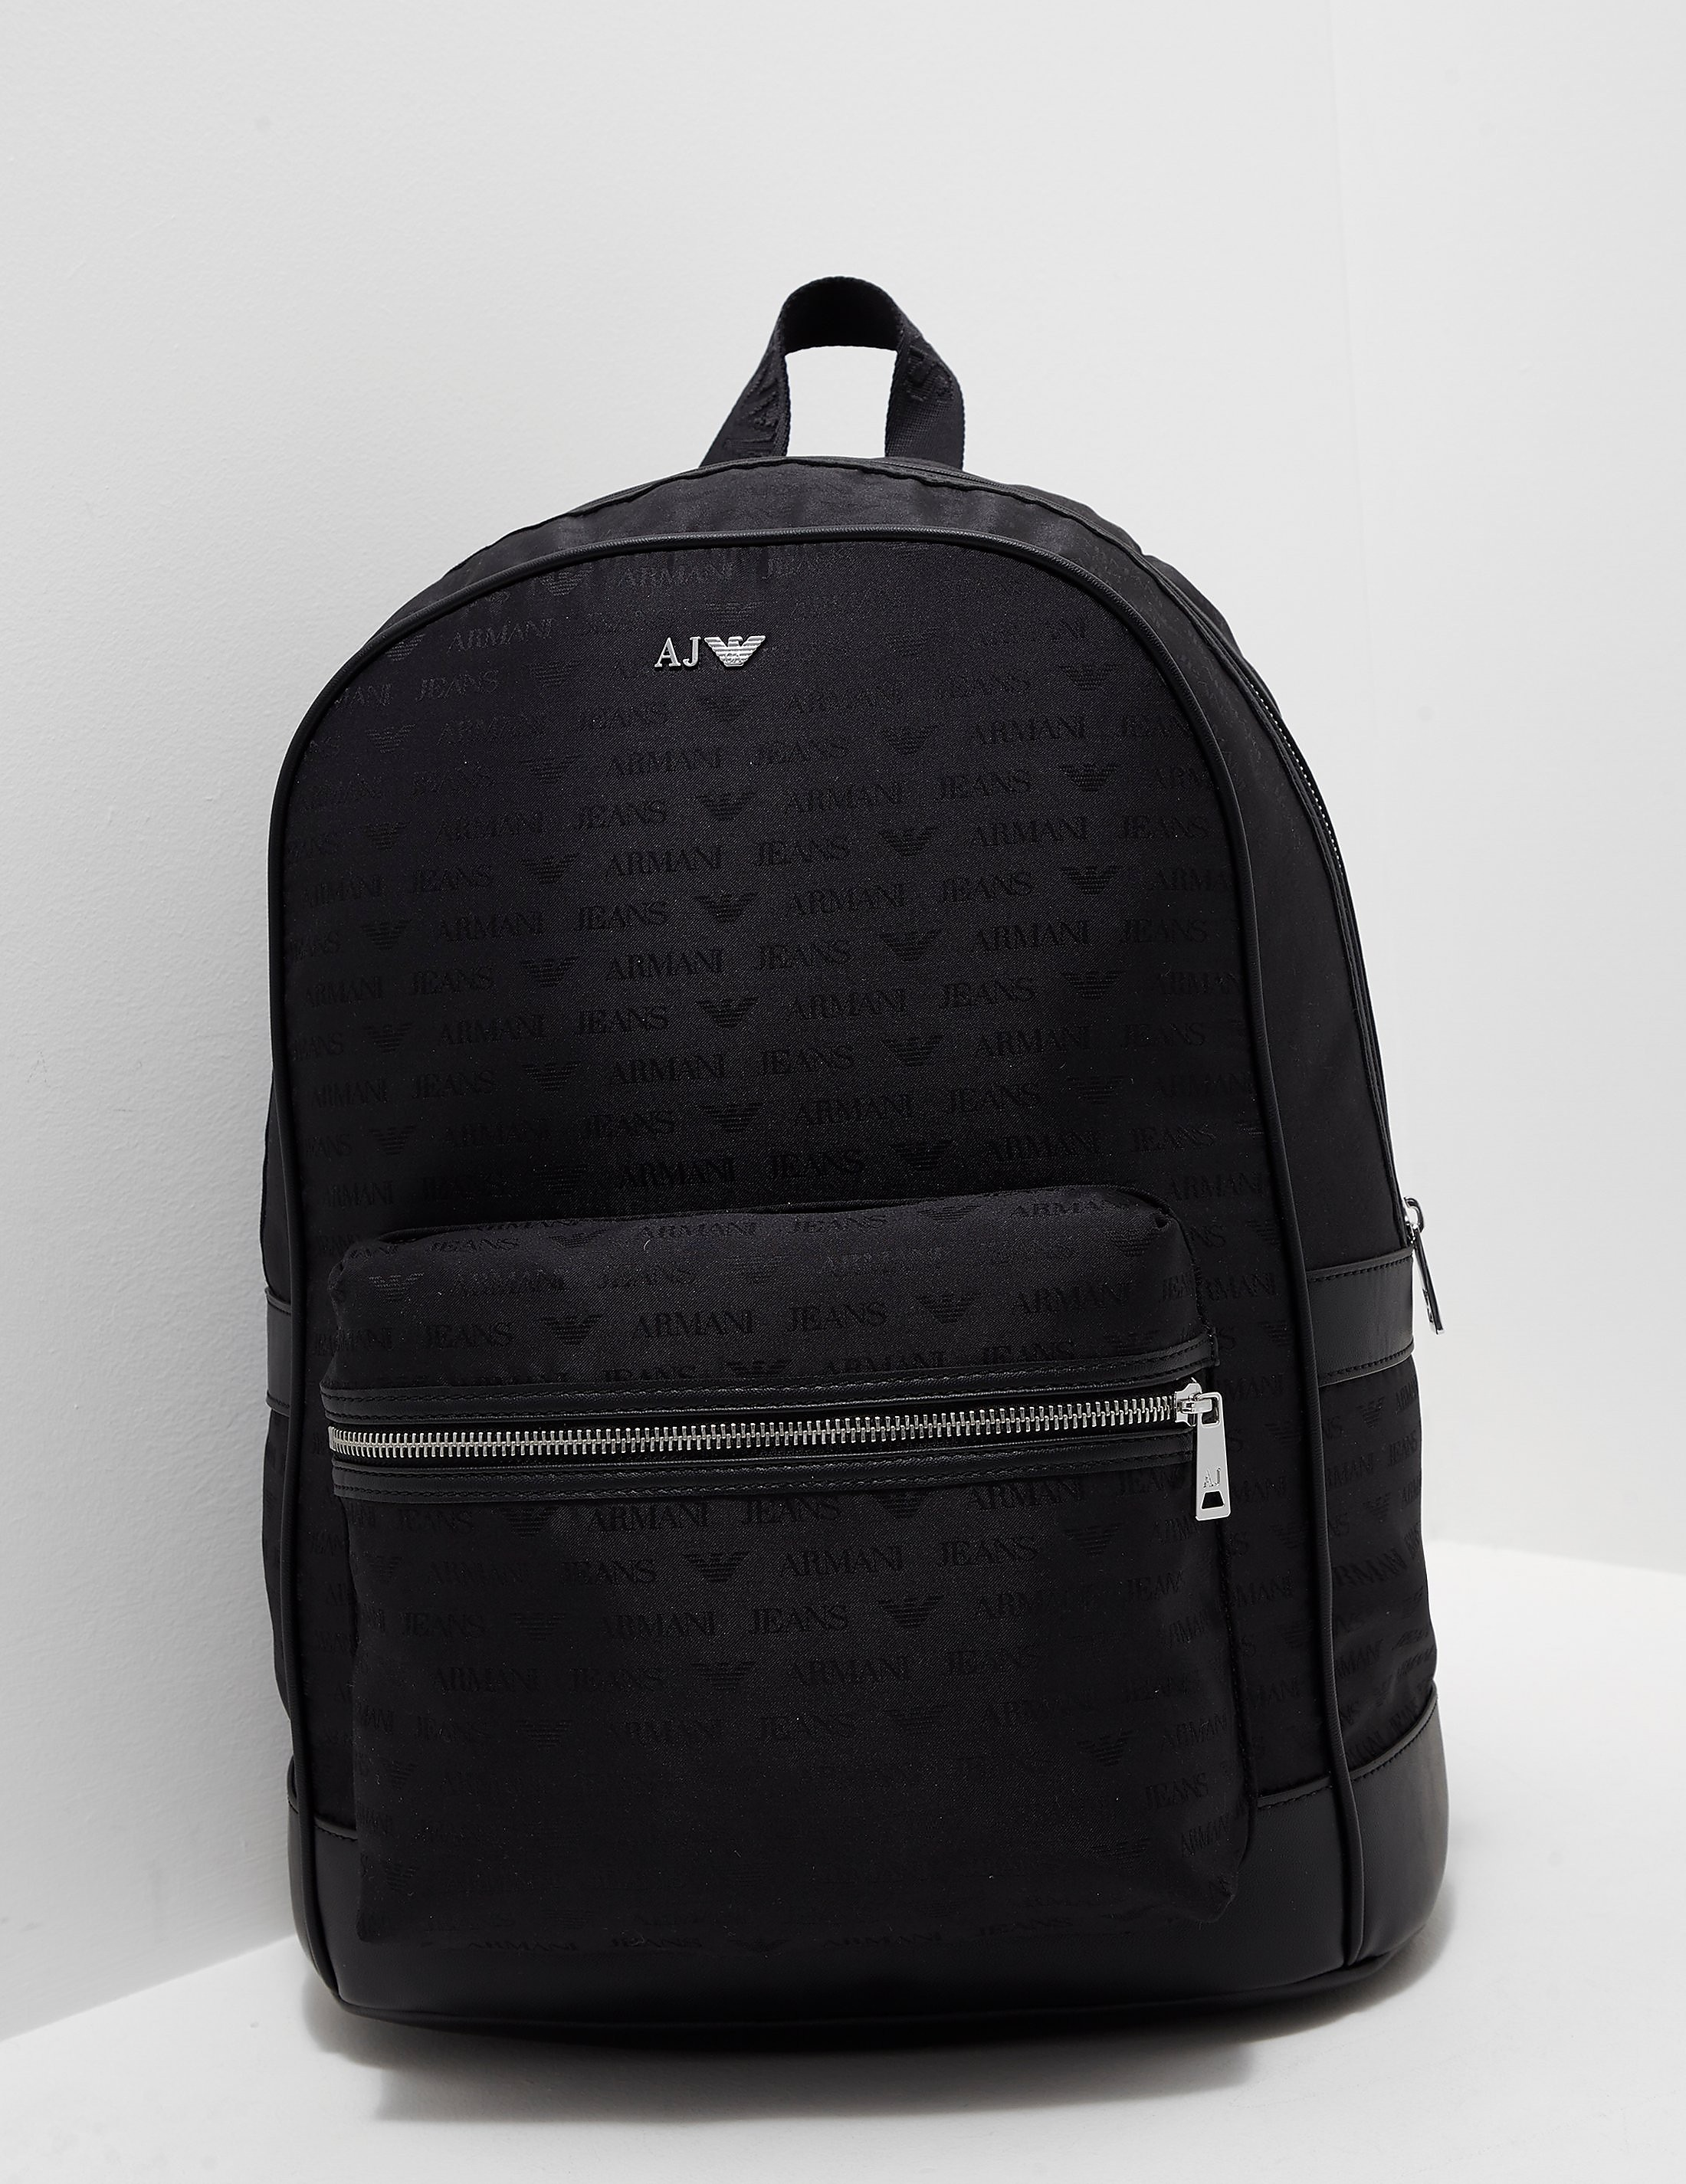 Armani Jeans Nylon Backpack